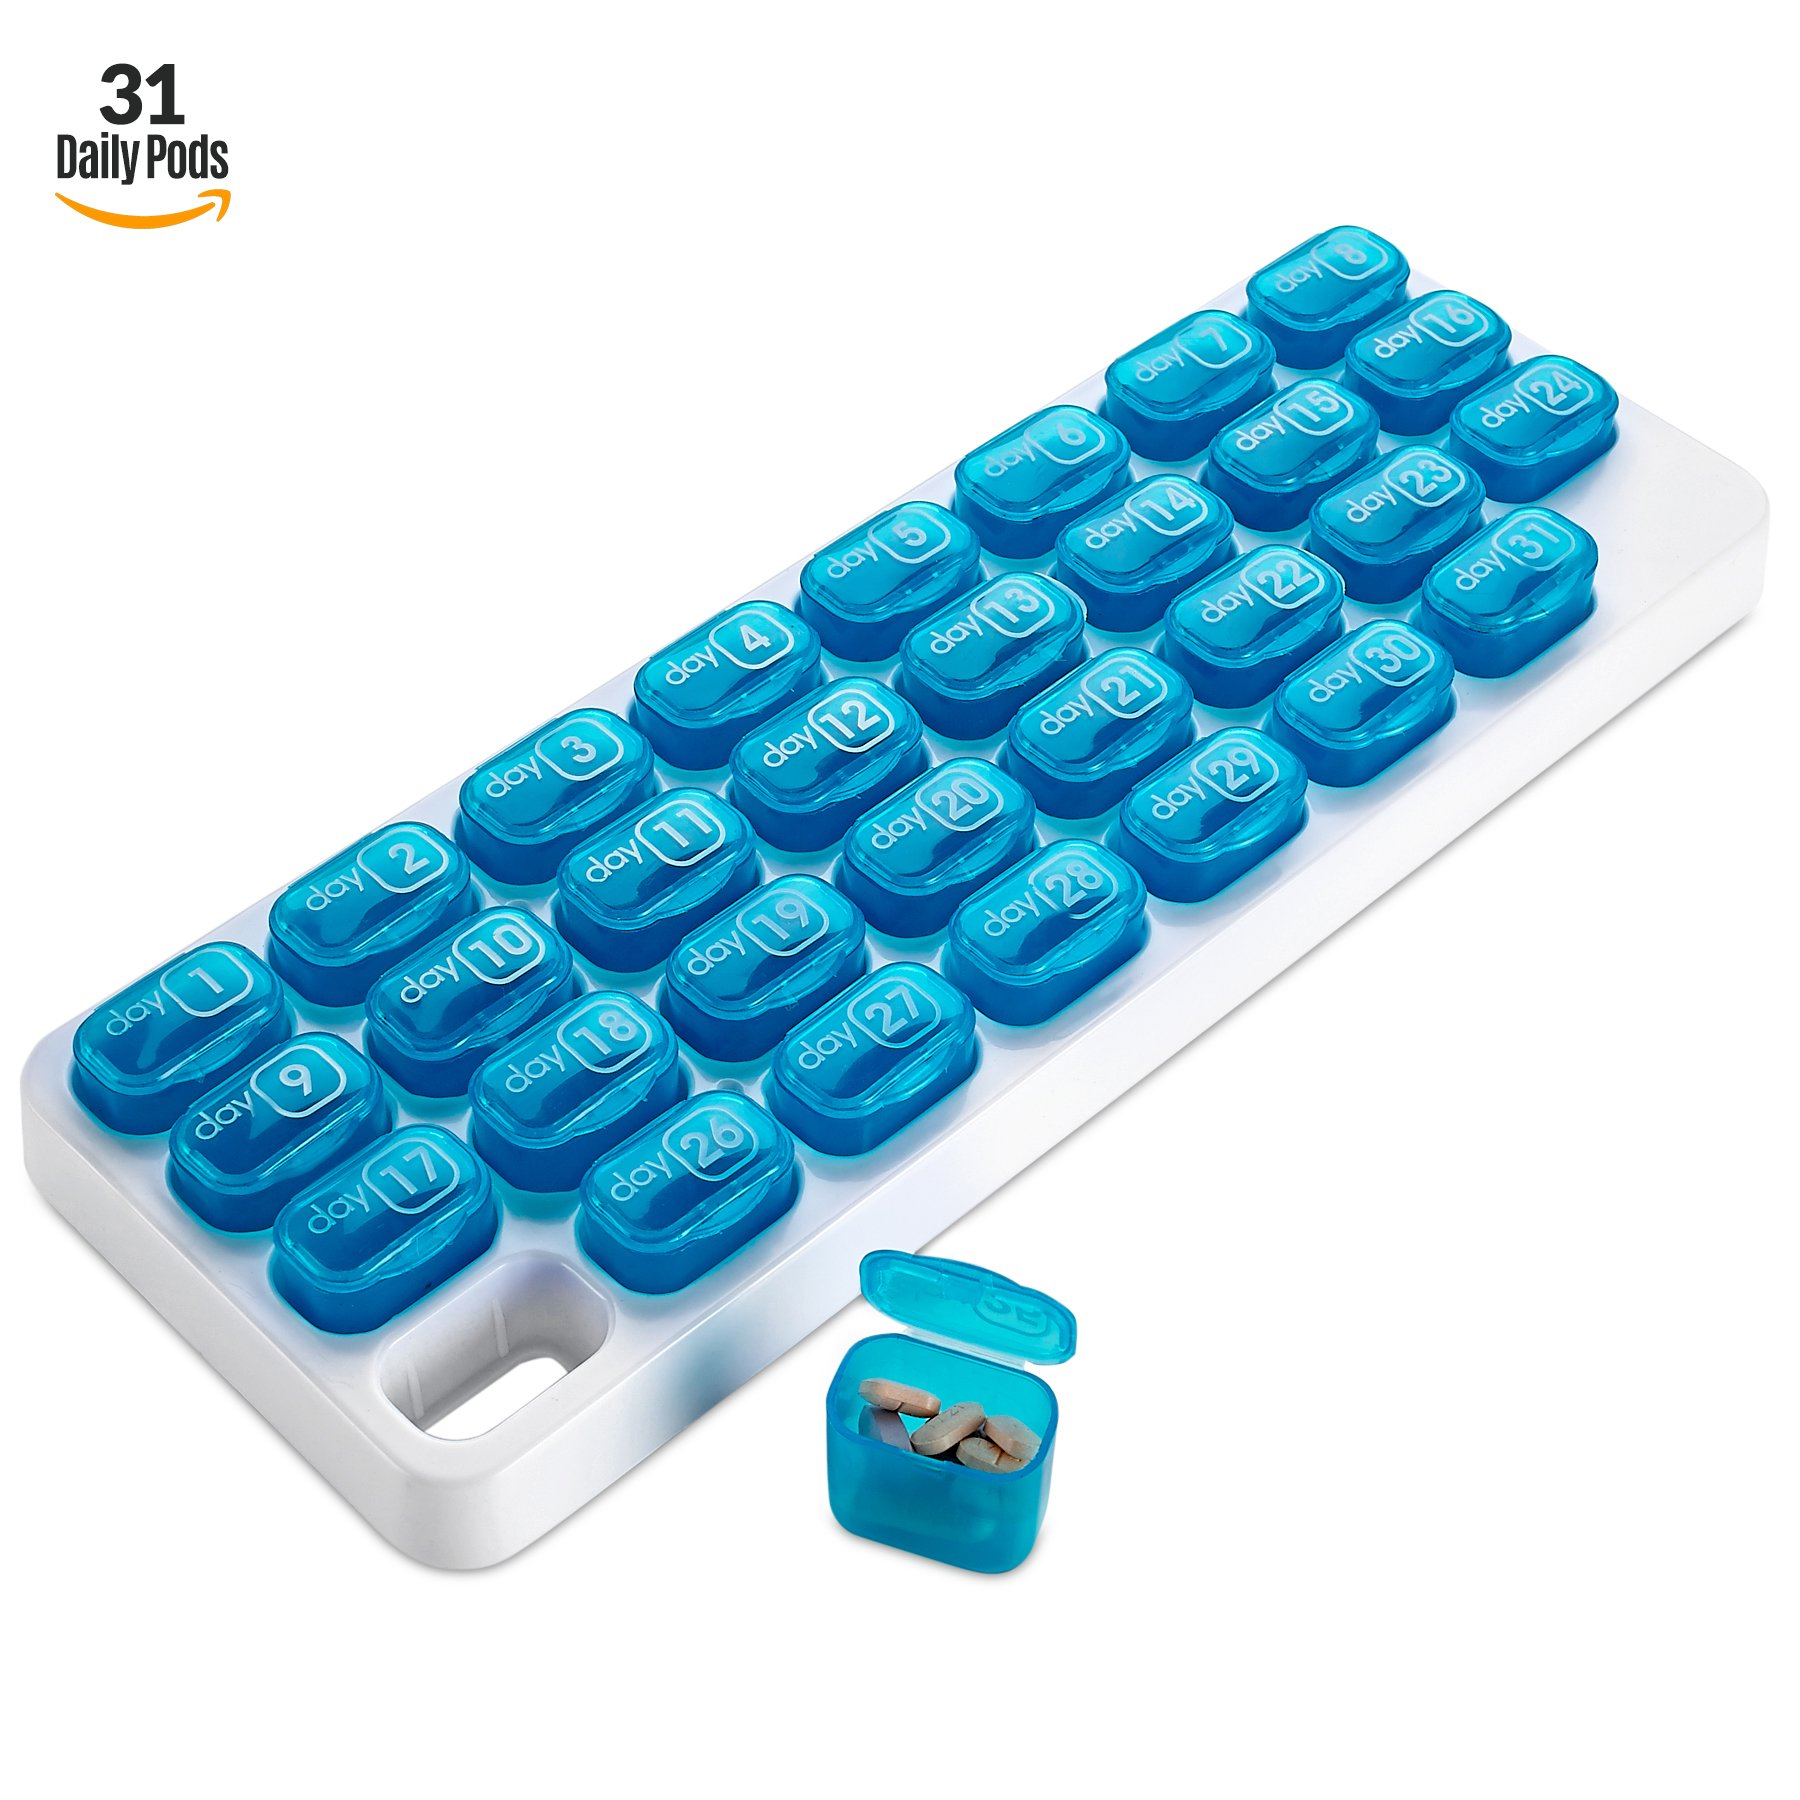 Monthly Pill Organizer - 31 Day Pill Organizer with Large Removable Medication Pods, Portable Pill Case Box and Holder for Daily Medicine and Vitamins, Great for Travel by MEDca by MEDca